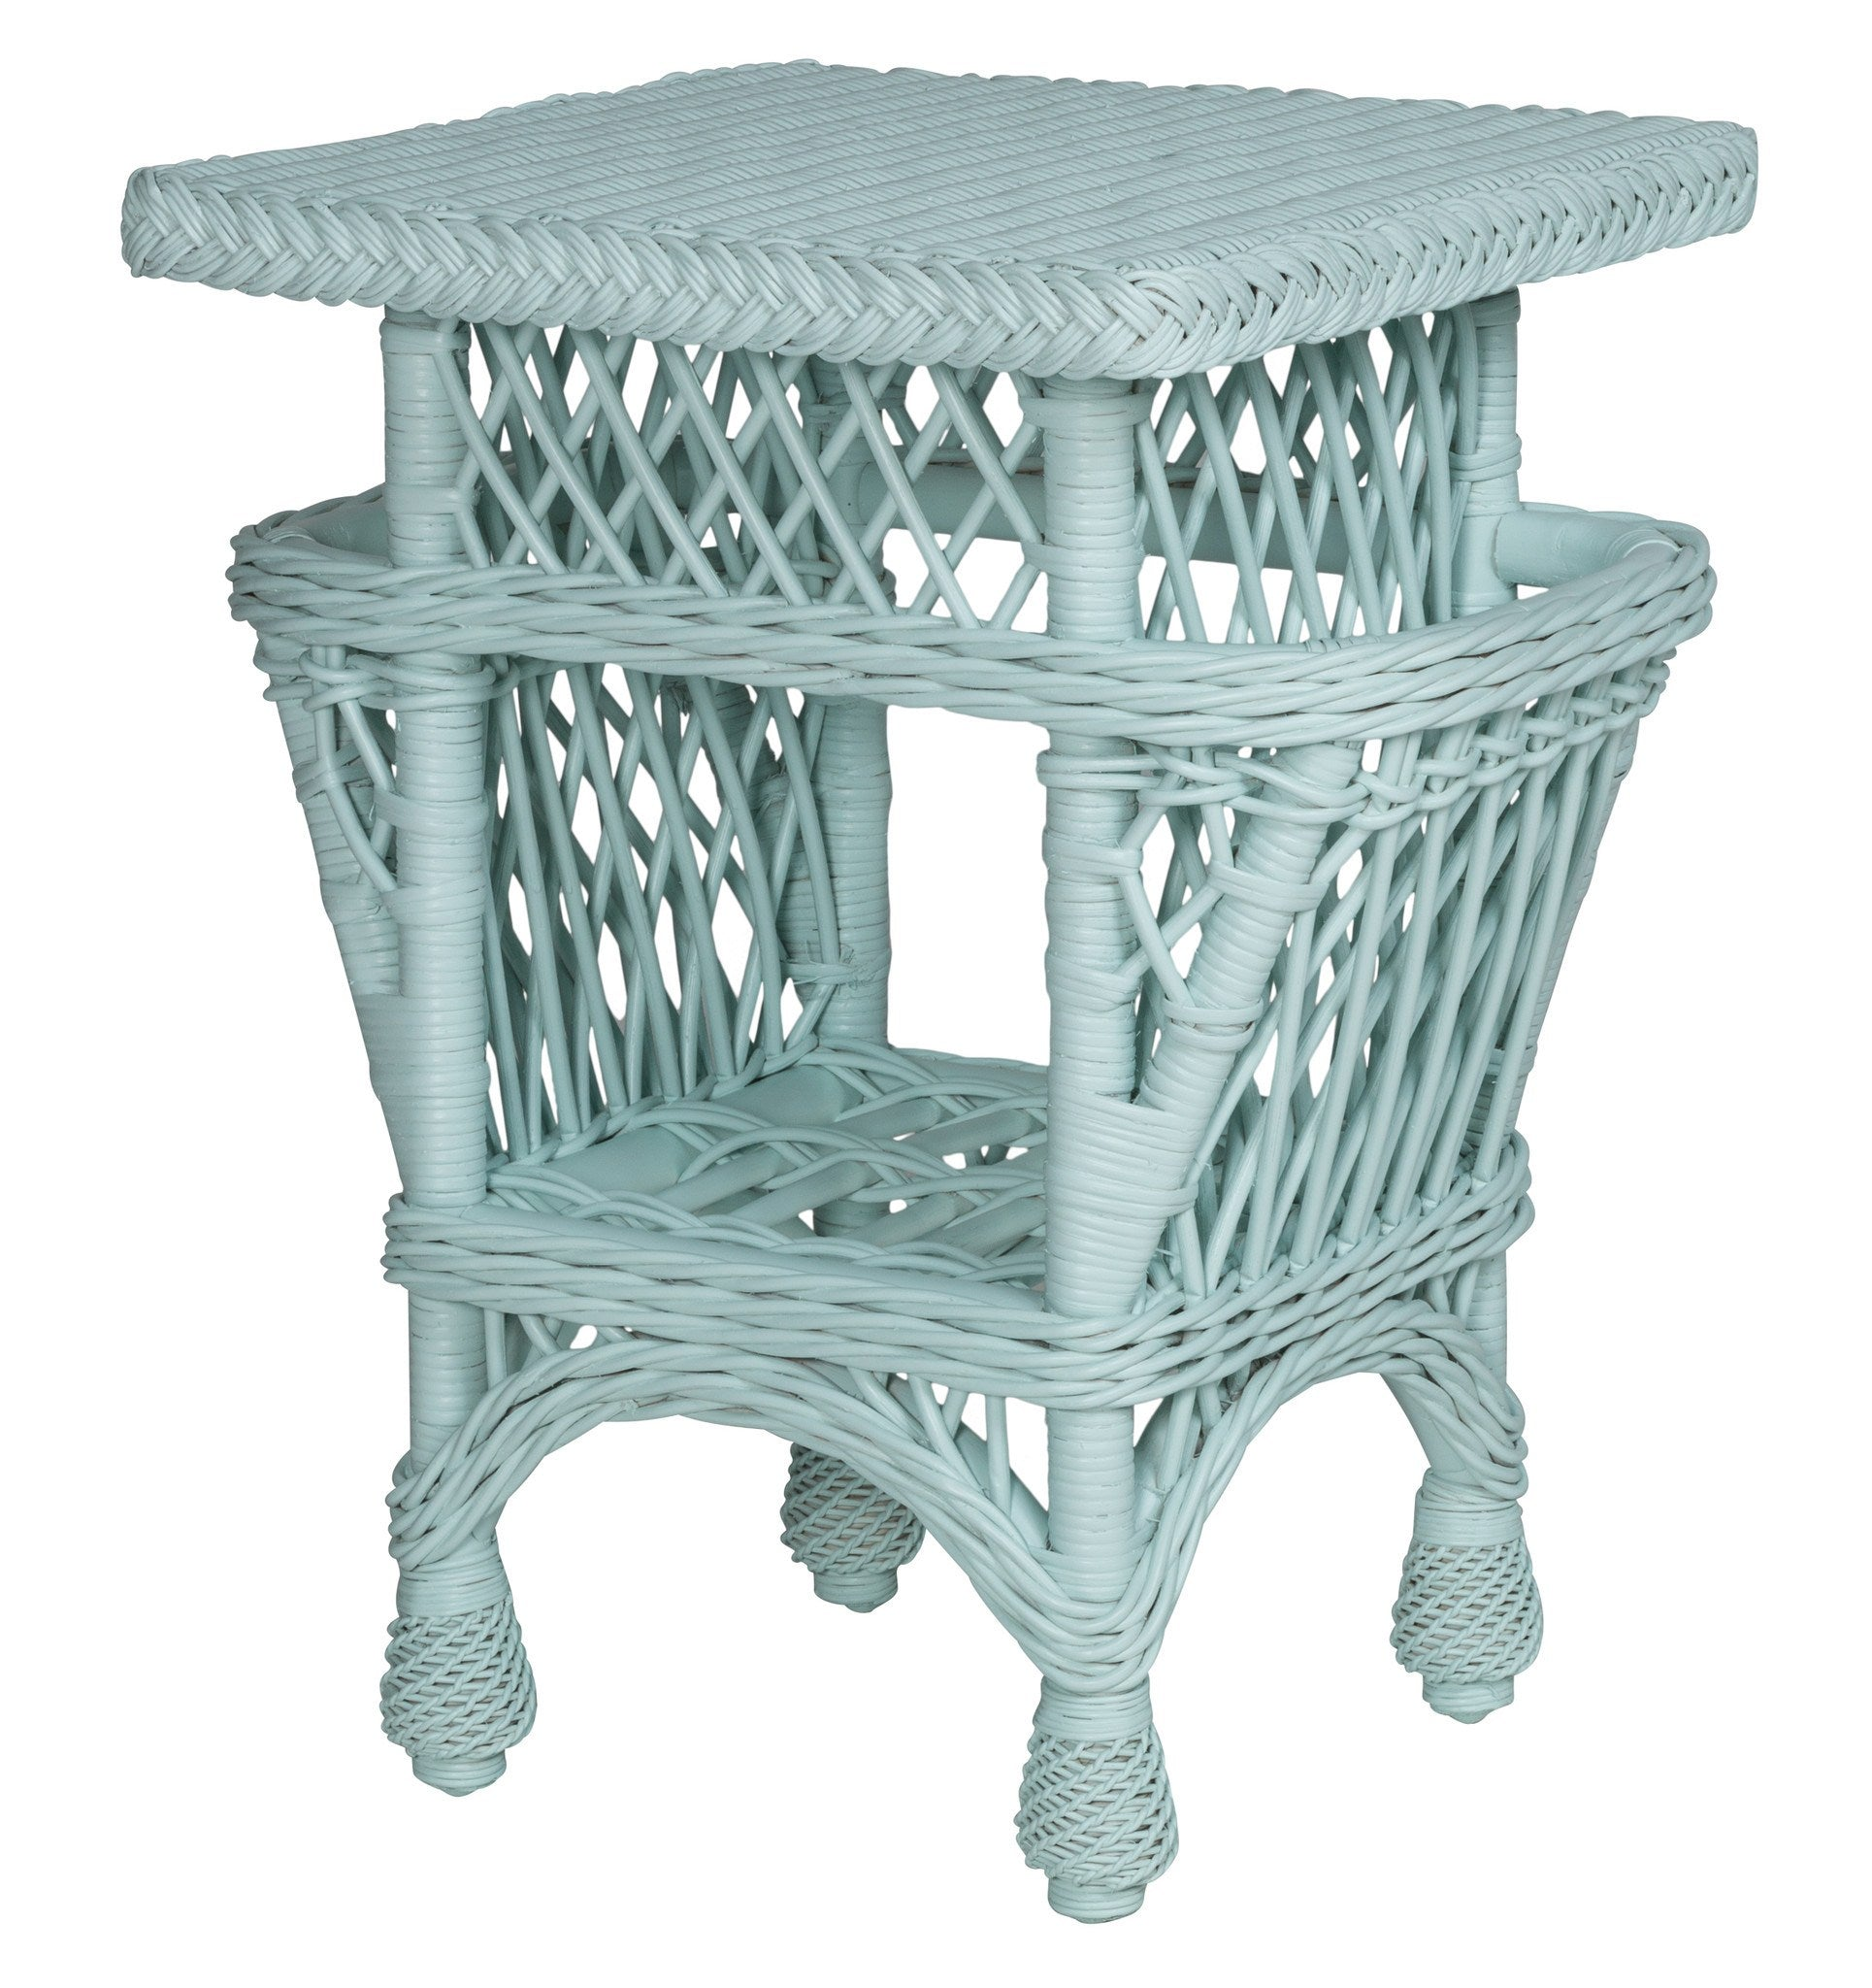 Designer Wicker & Rattan By Tribor Harbor Front Accent Table With Pockets Accessory - Rattan Imports